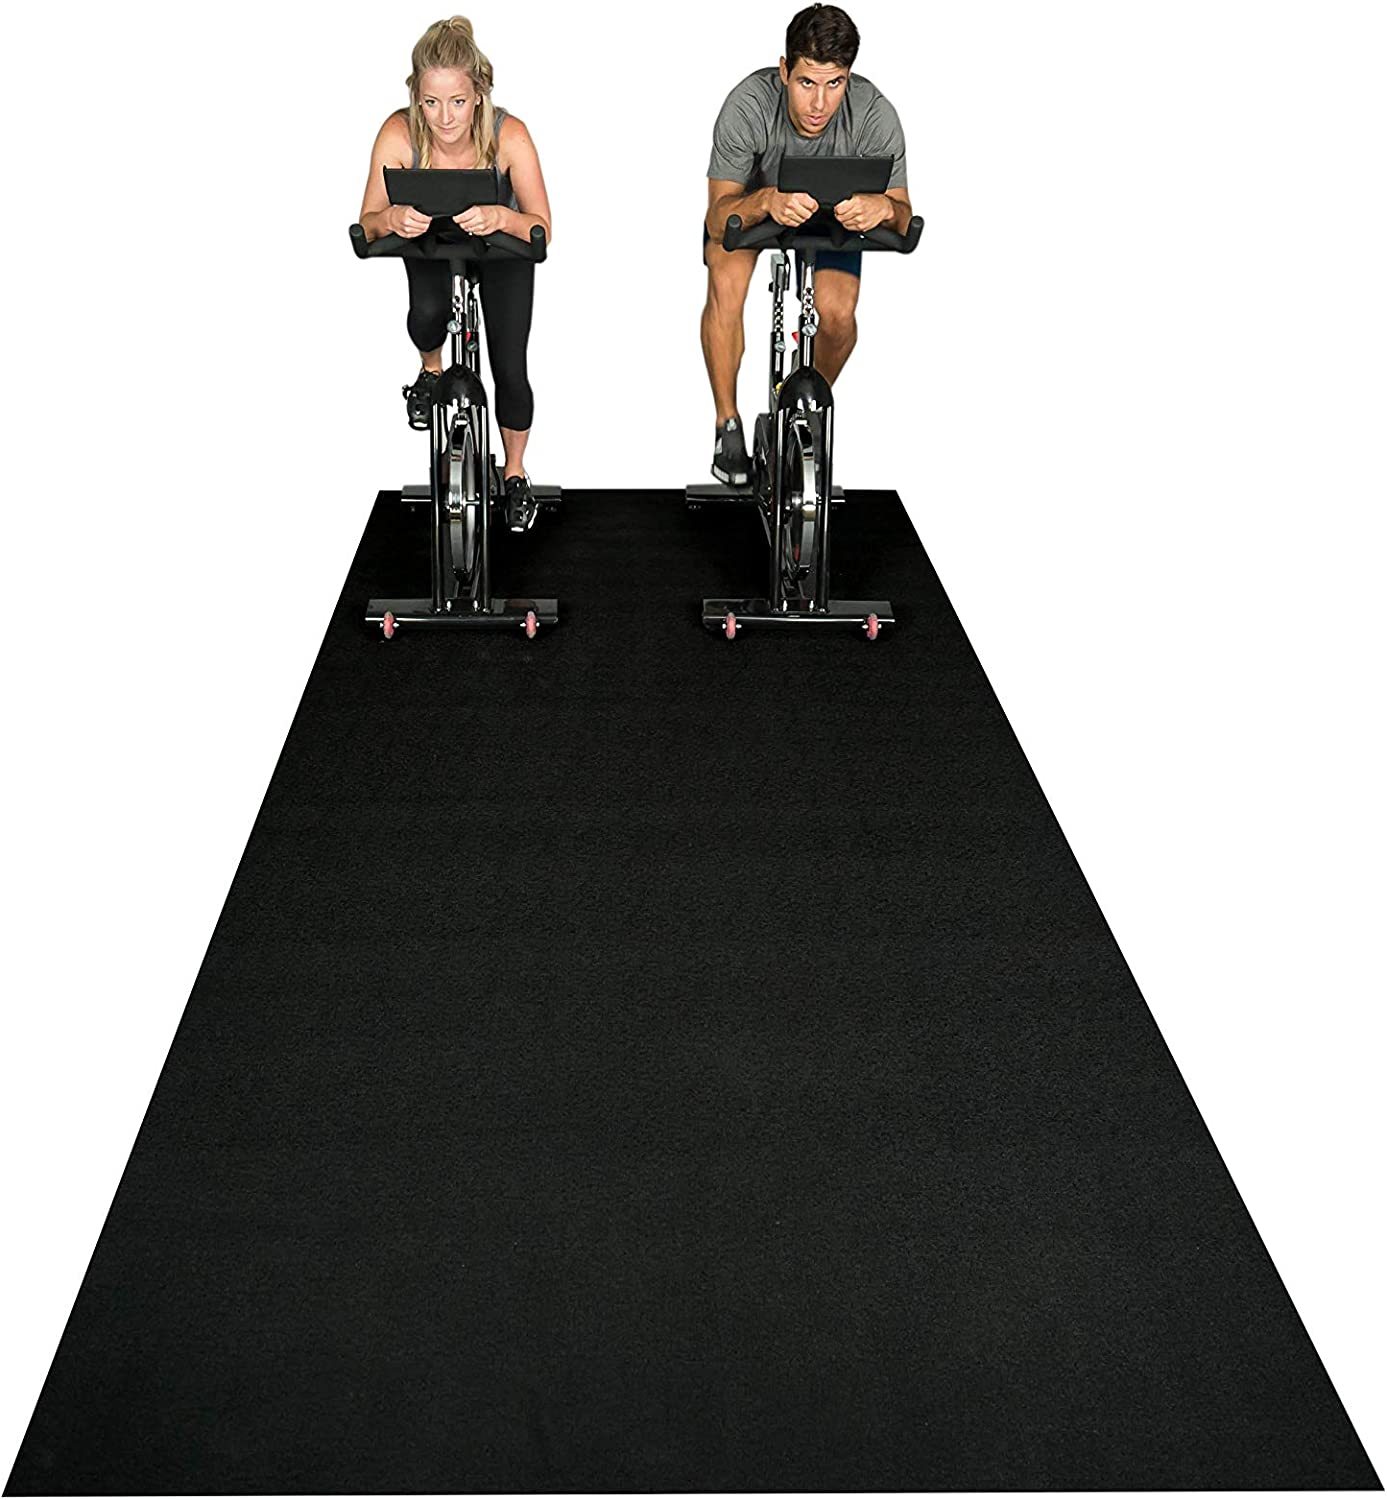 Square36 New Large Fitness Equipment Mat 10 Ft x 6 Ft. Made in Germany - Highest Grade Materials. Our Gym Flooring Mat Fits Several Fitness Machines ...